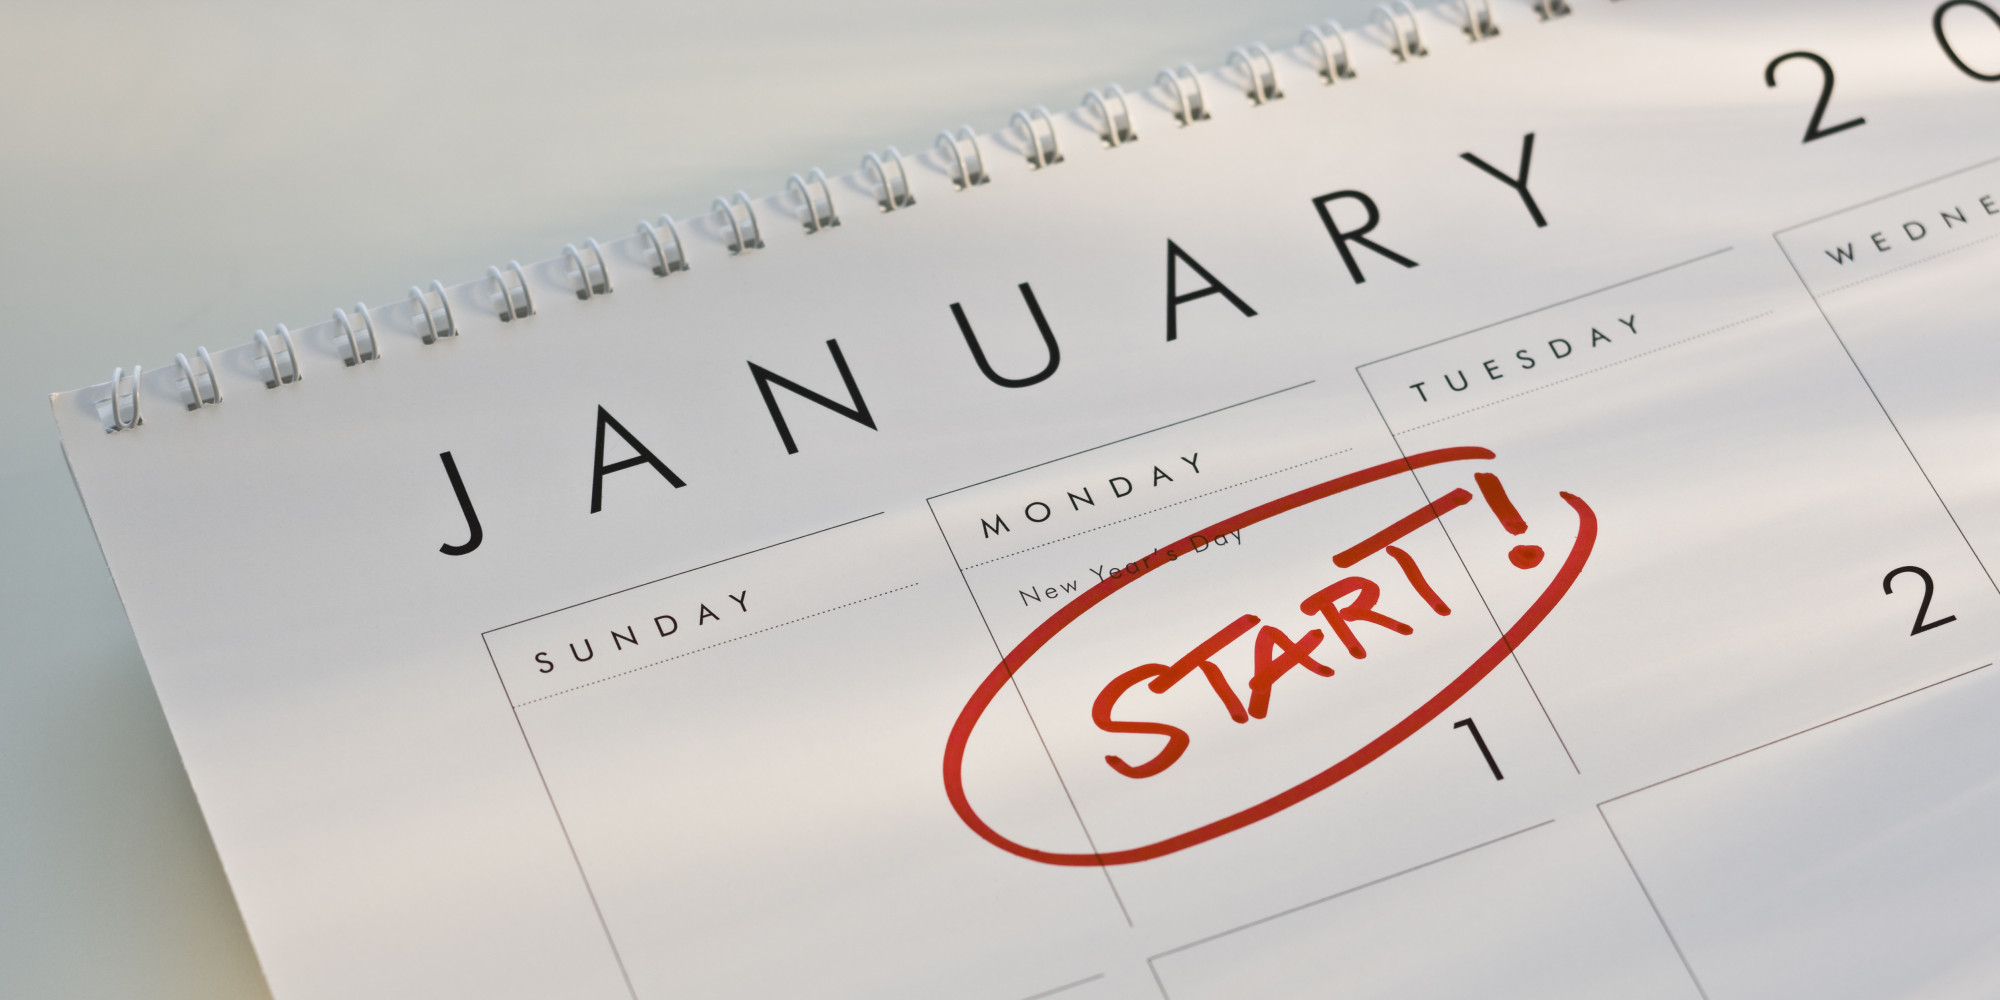 10 Important & Rewarding New Year's Resolutions